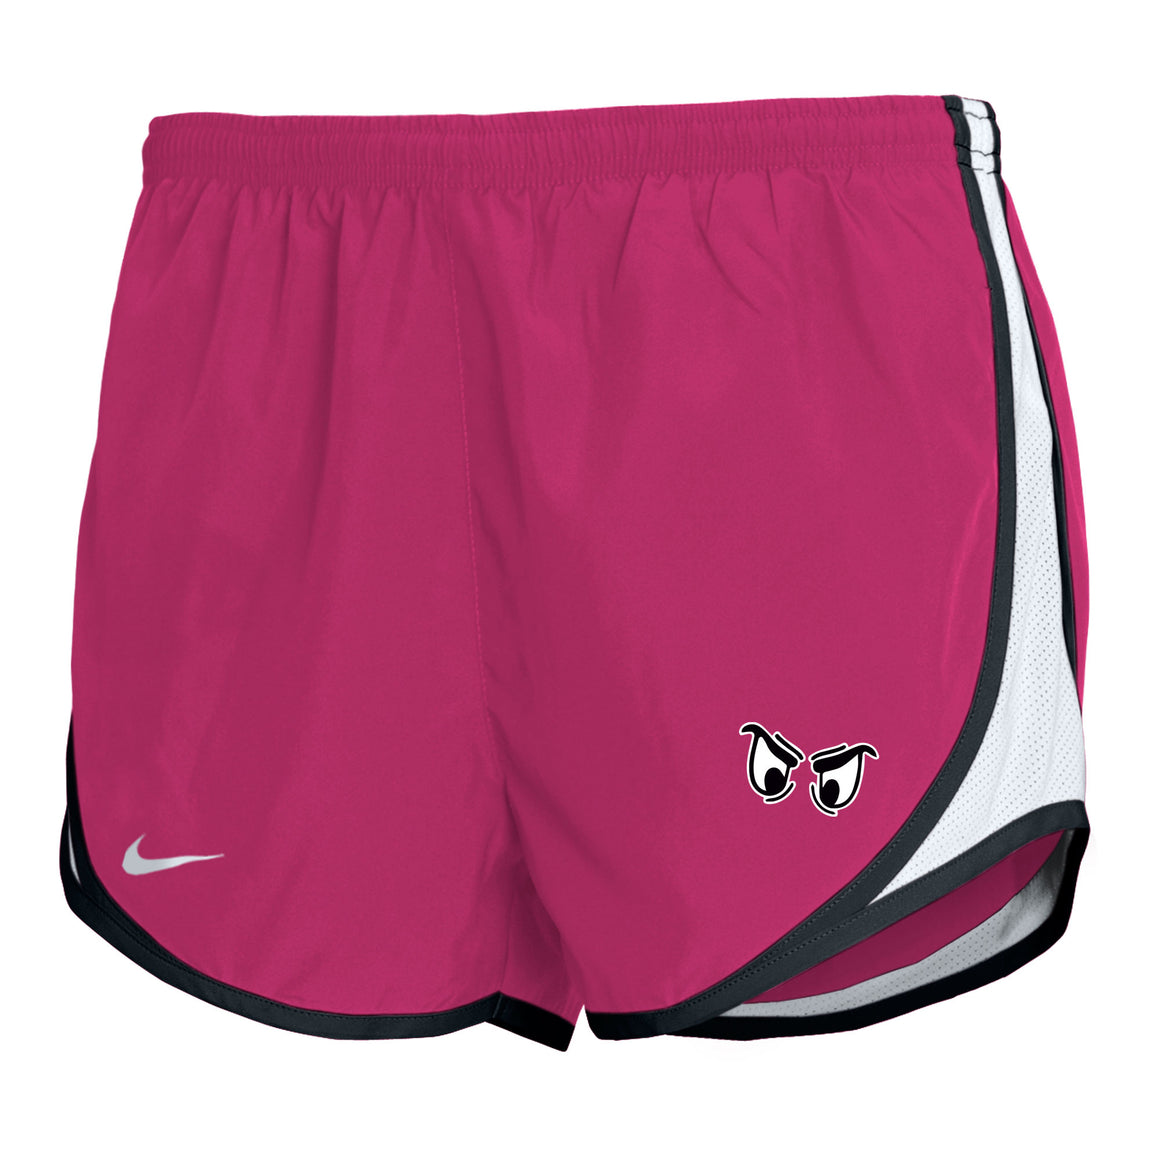 Copy of Girl's Nike Embossed Mod Tempo Shorts - Hot Pink